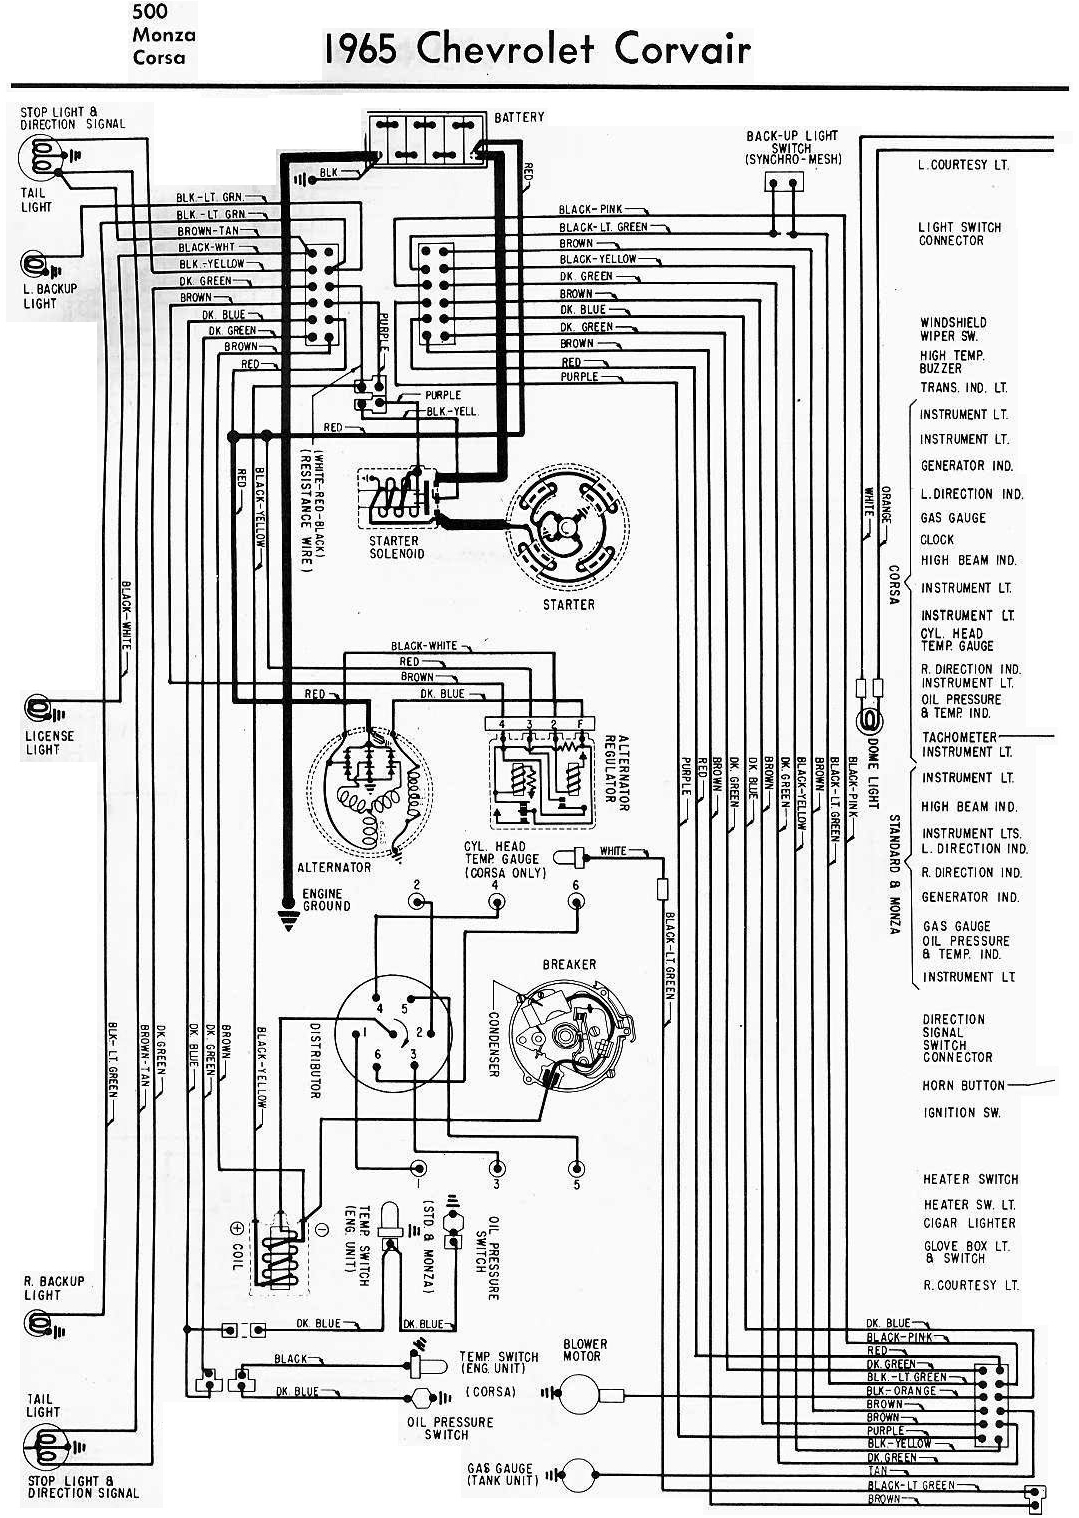 65 impala tail light wiring diagram wiring diagram fuse box u2022 rh friendsoffido co